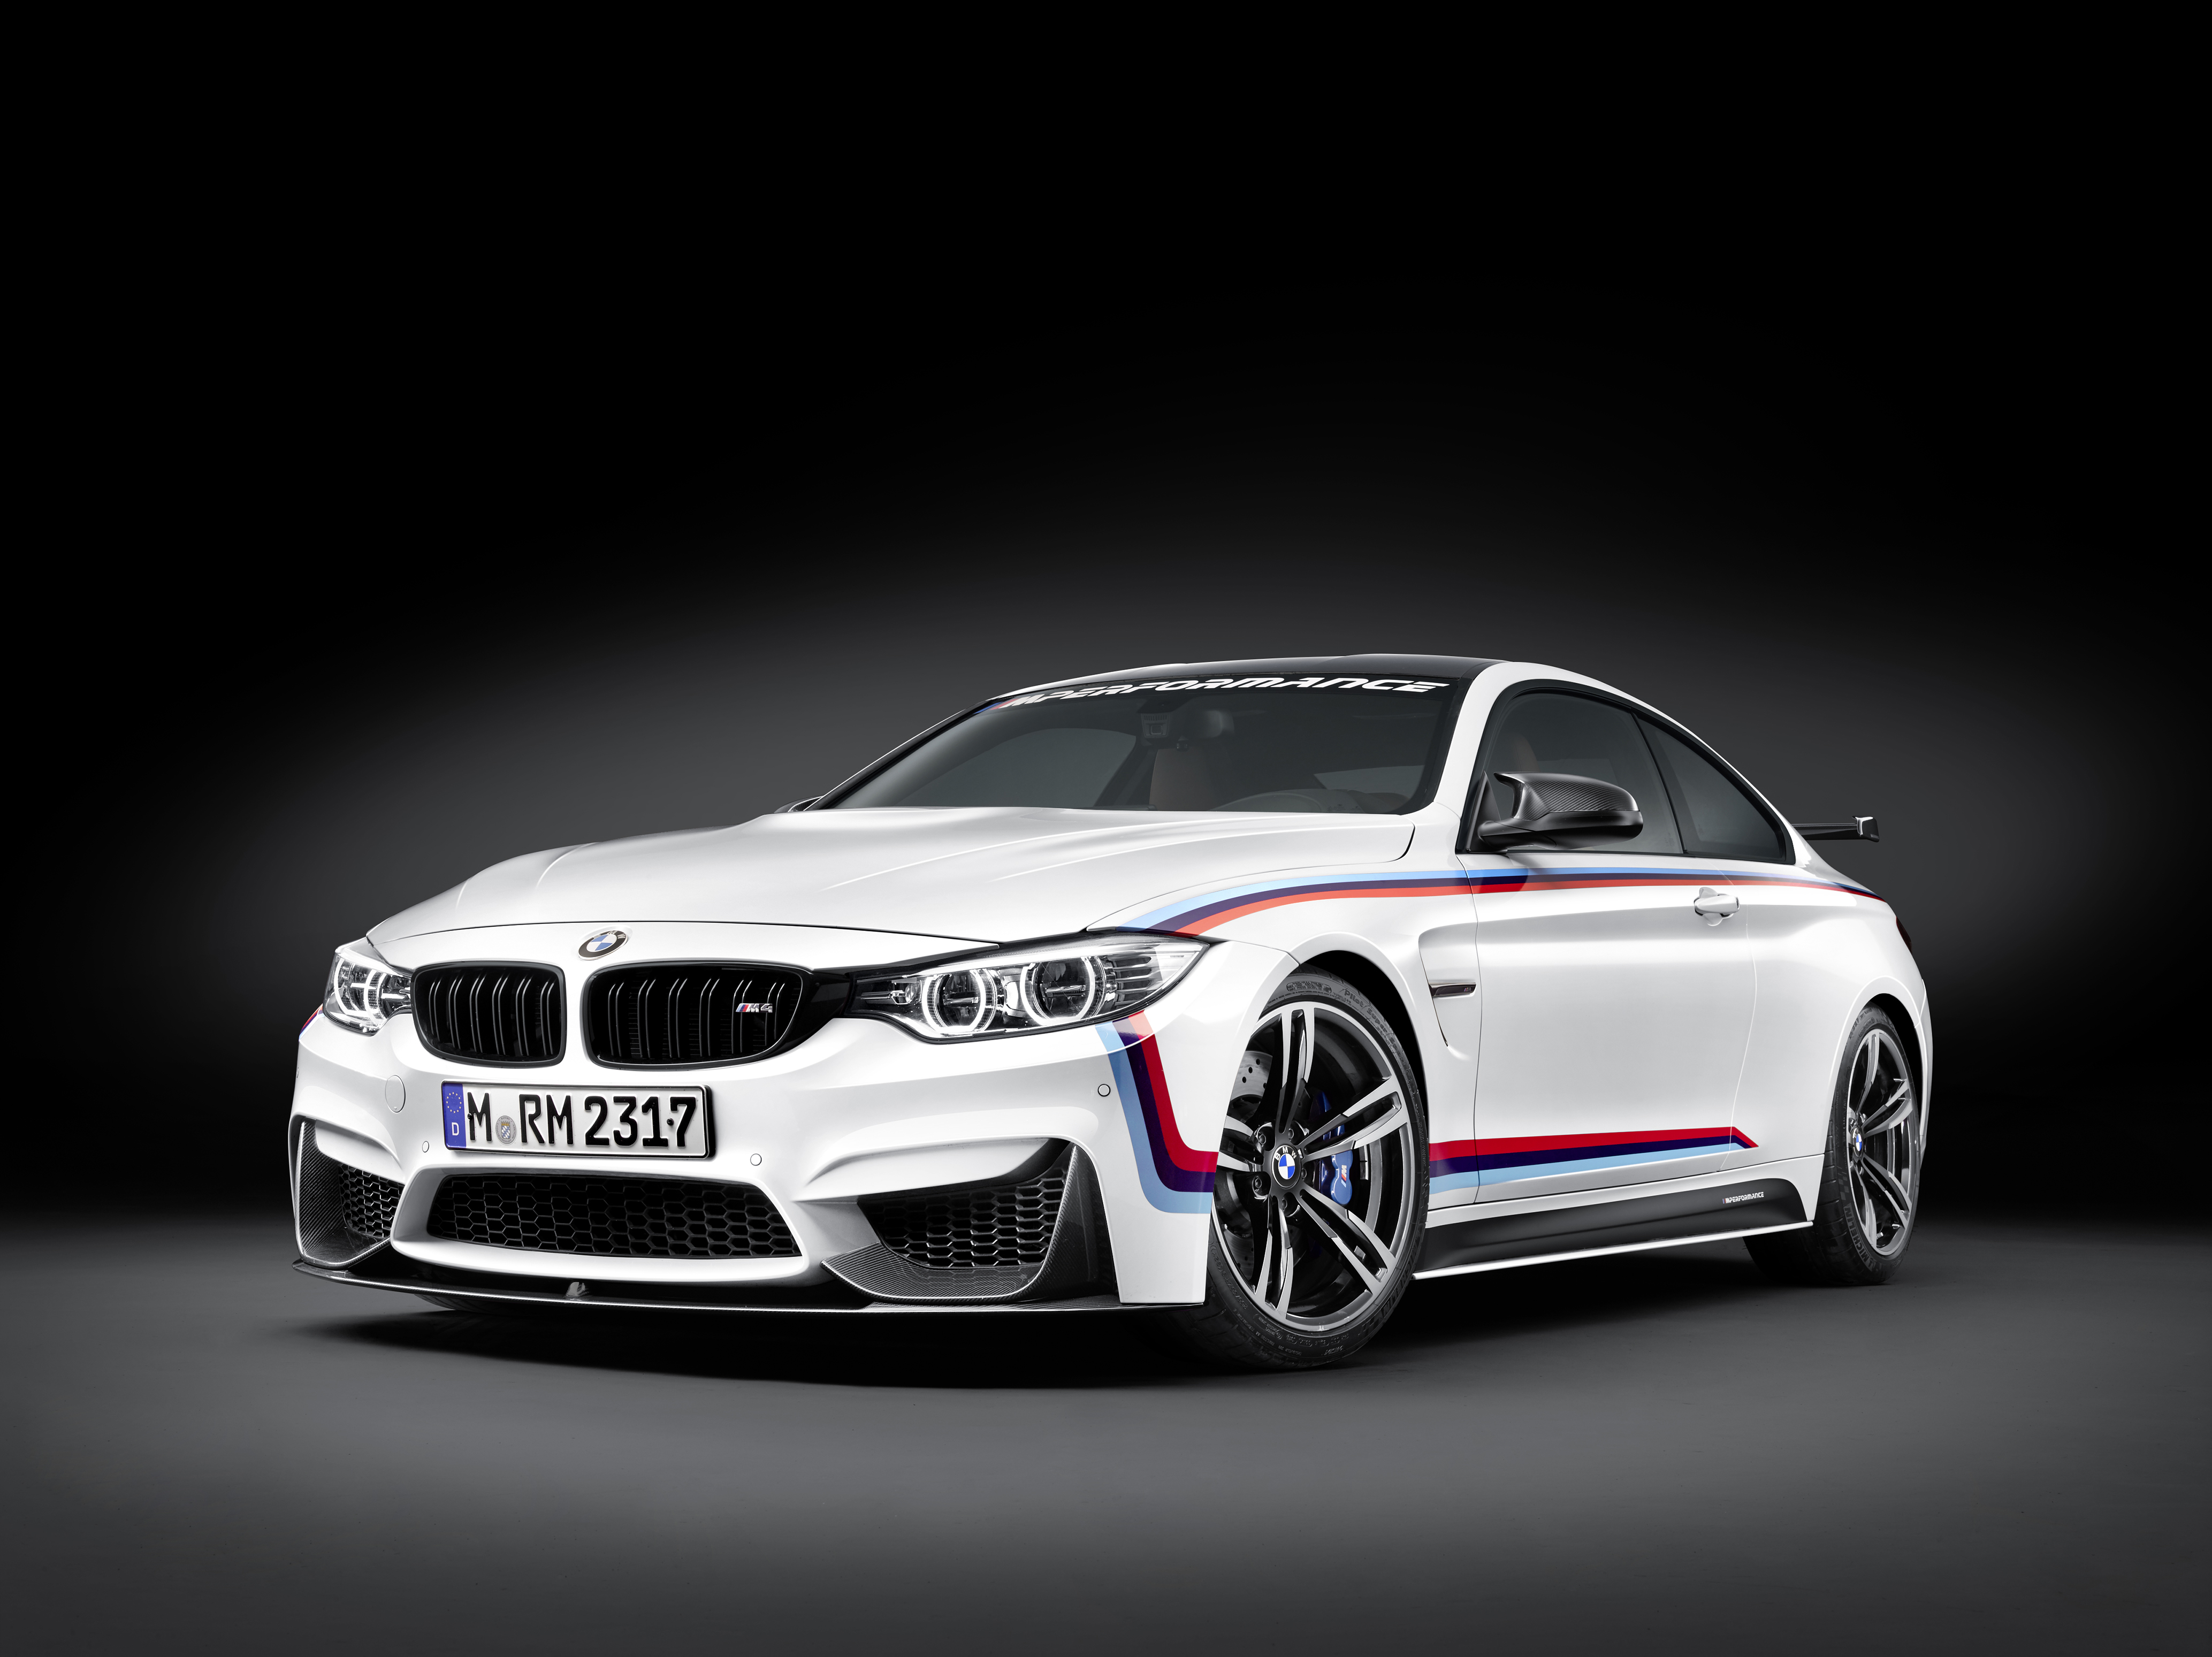 New bmw m4 m performance parts introduced at sema 2015 including cfrp wing autoevolution